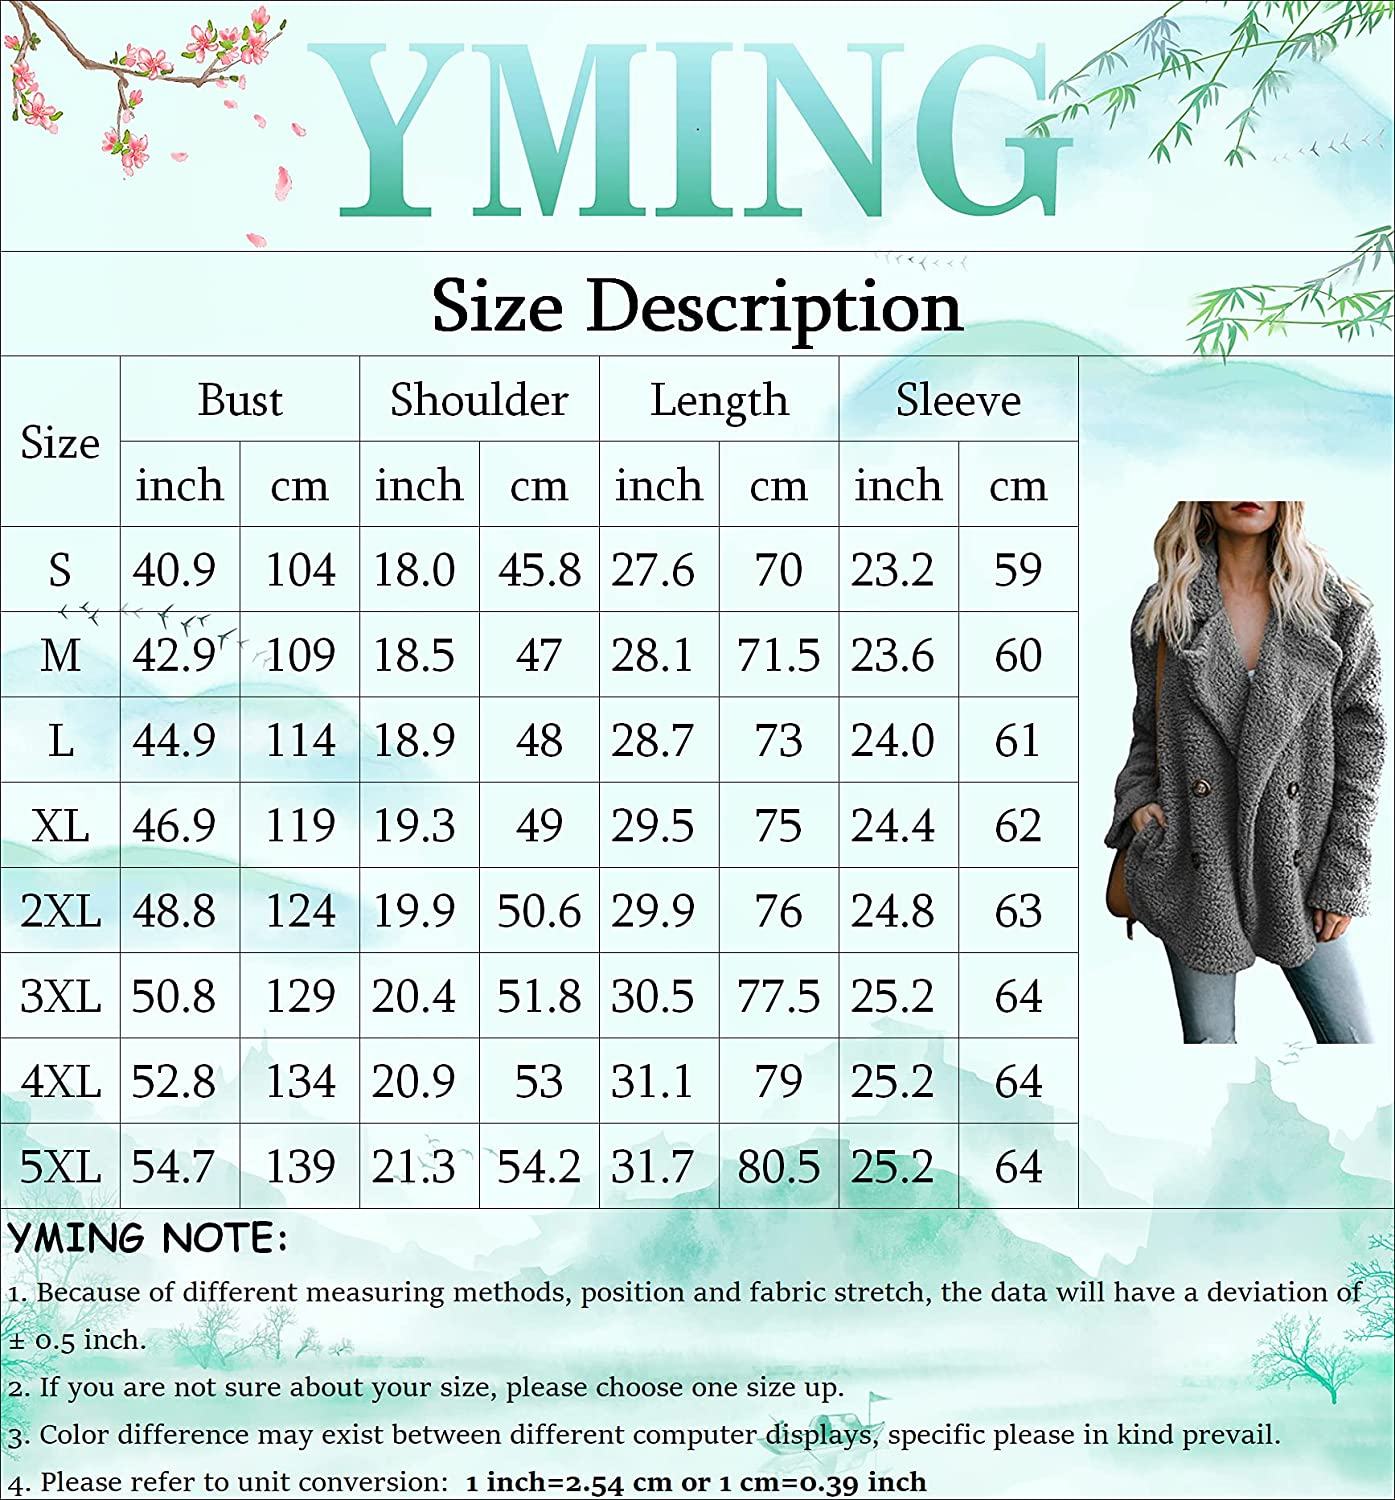 YMING Womens Plus Size Lapel Faux Fur Shaggy Jacket Winter Sherpa Coat Warm Double Breasted Outwear with Pockets